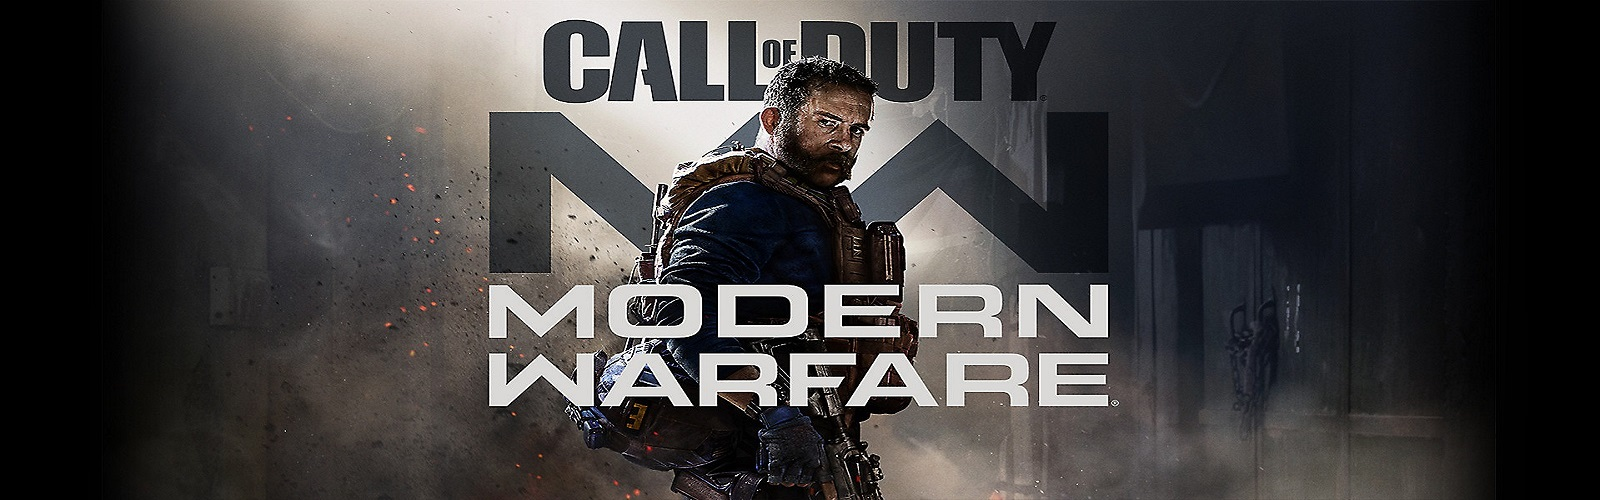 call-of-duty-modern-warfare-hero-banner-03-ps4-us-30may19